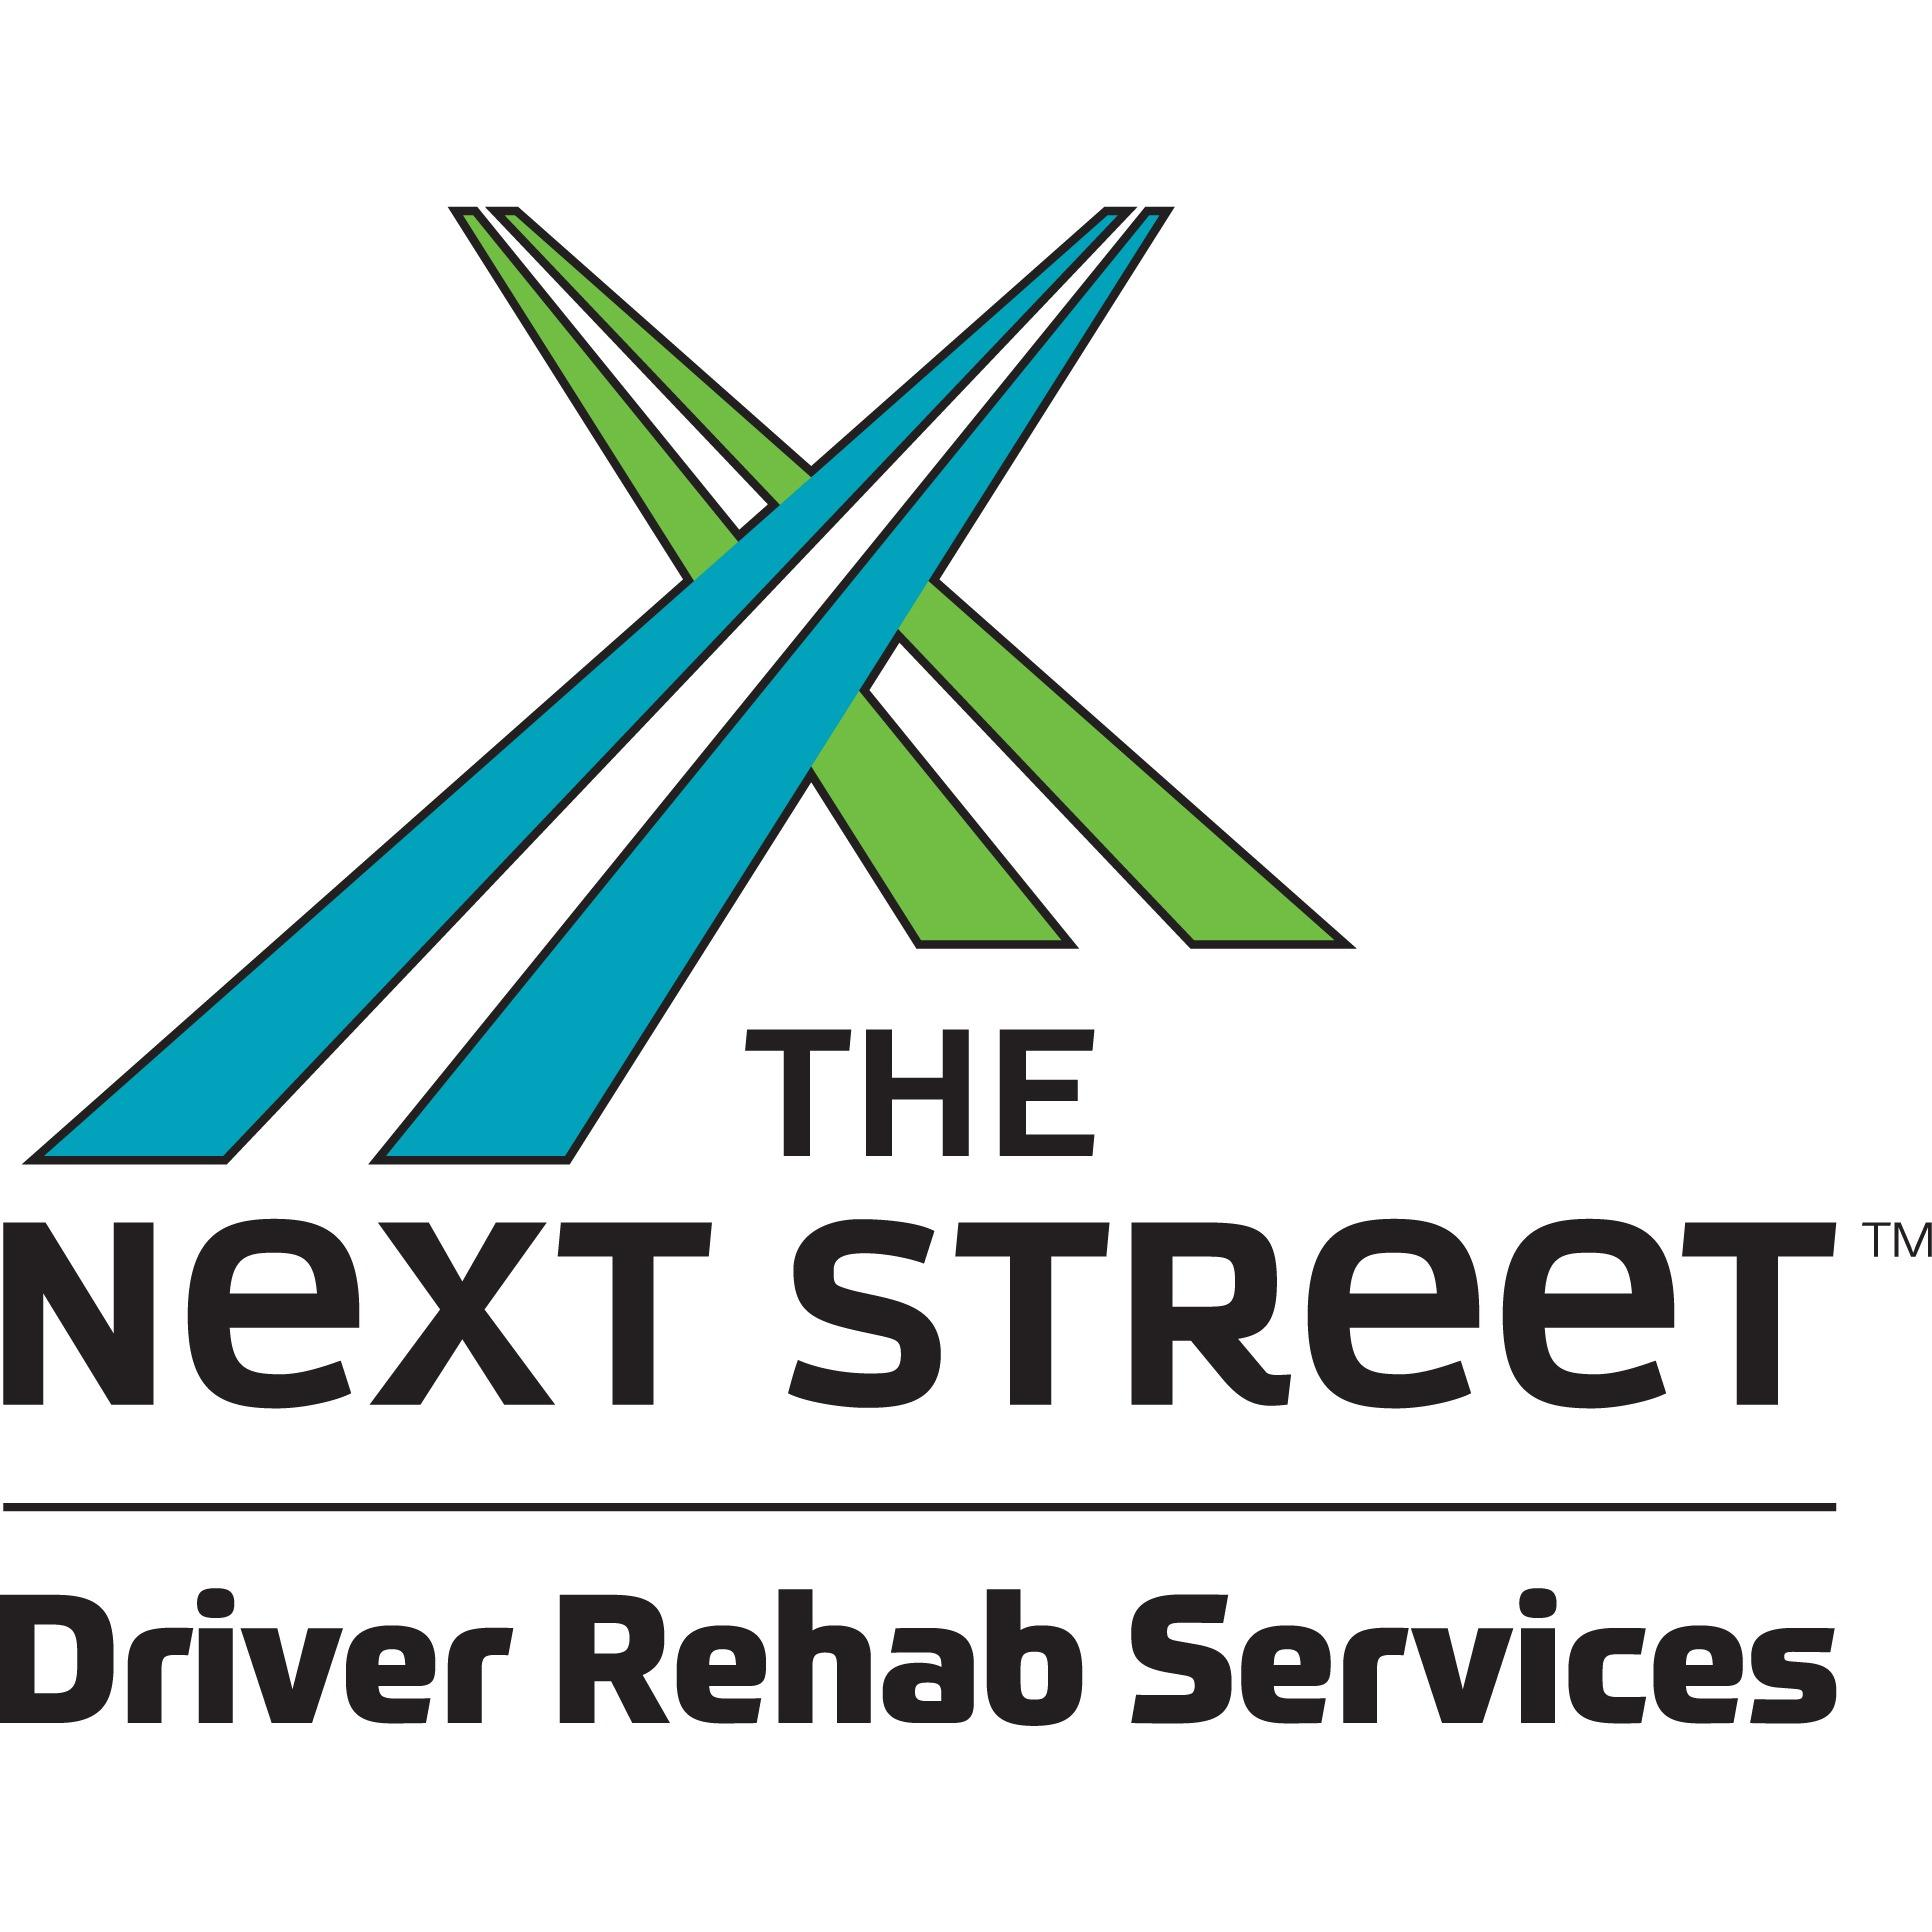 The Next Street Driver Rehabilitation Services - Watertown, CT 06795 - (860)417-5569   ShowMeLocal.com